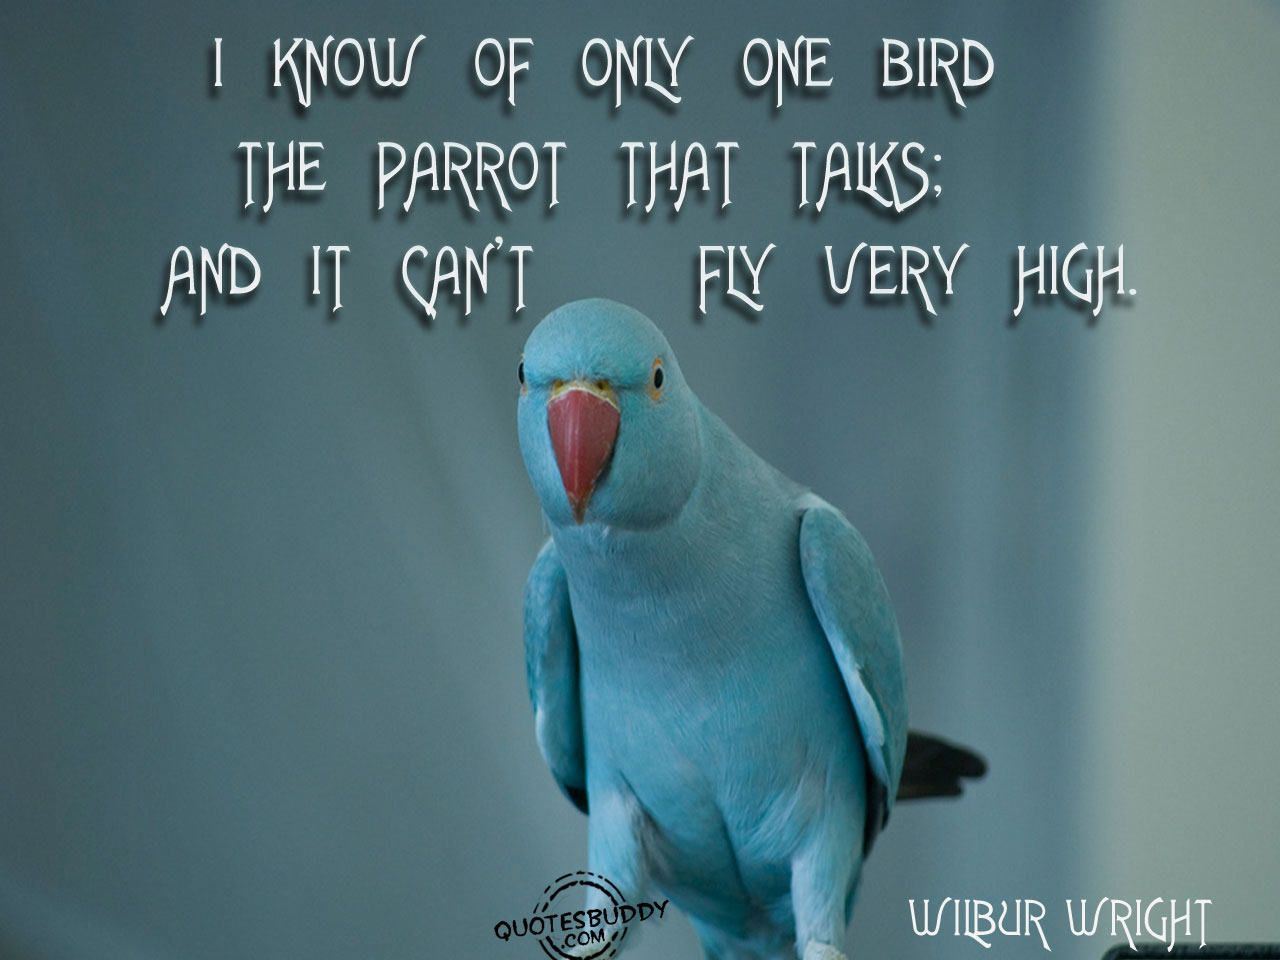 Funny Bird Pictures With Sayings Bird Quotes Funny Bird Pictures New Home Quotes